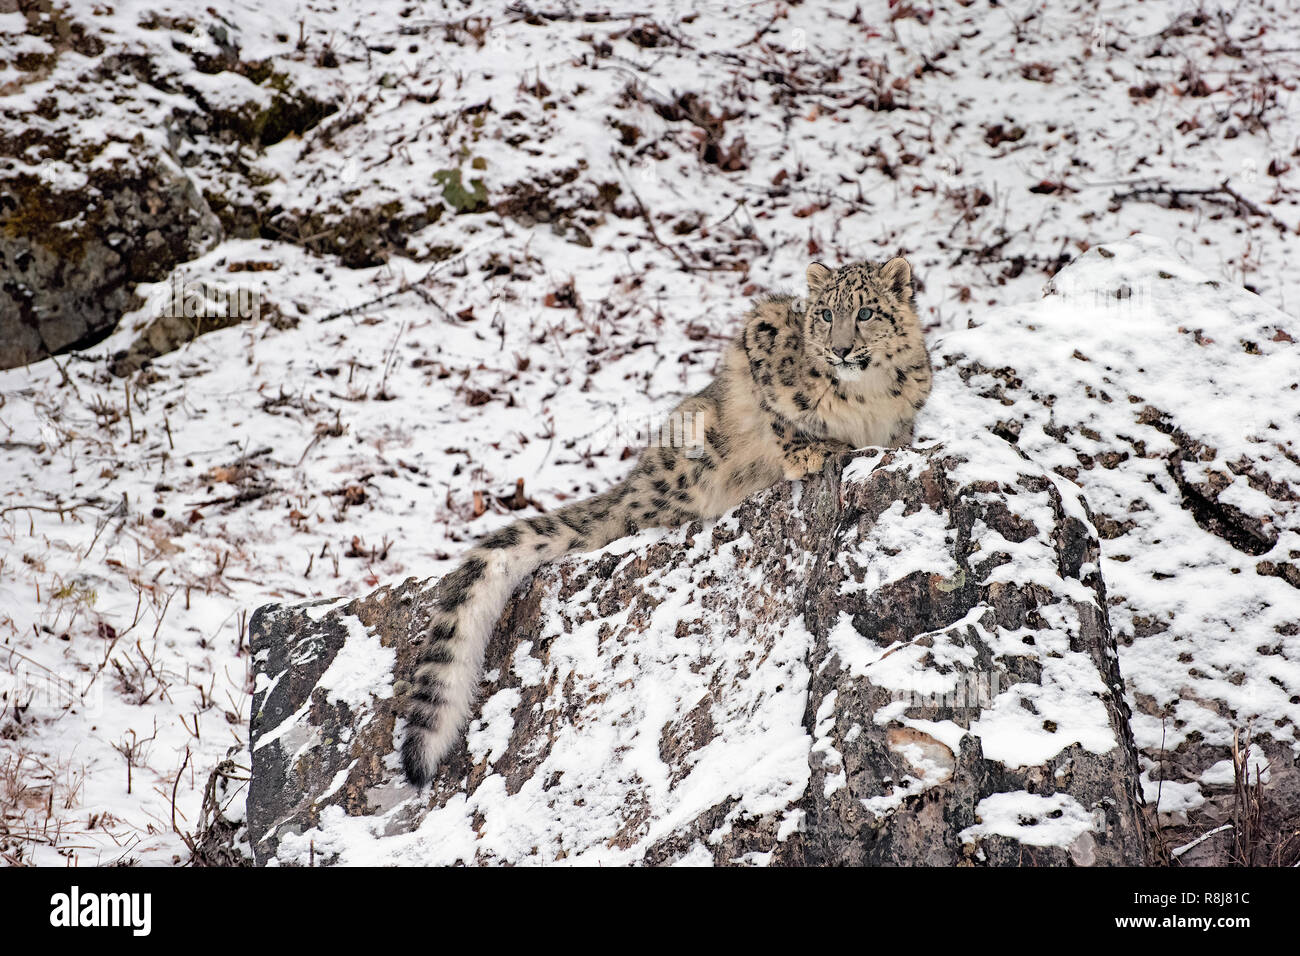 Snow Leopard Cub in the Snow, Crouching atop a Rocky Ledge - Stock Image